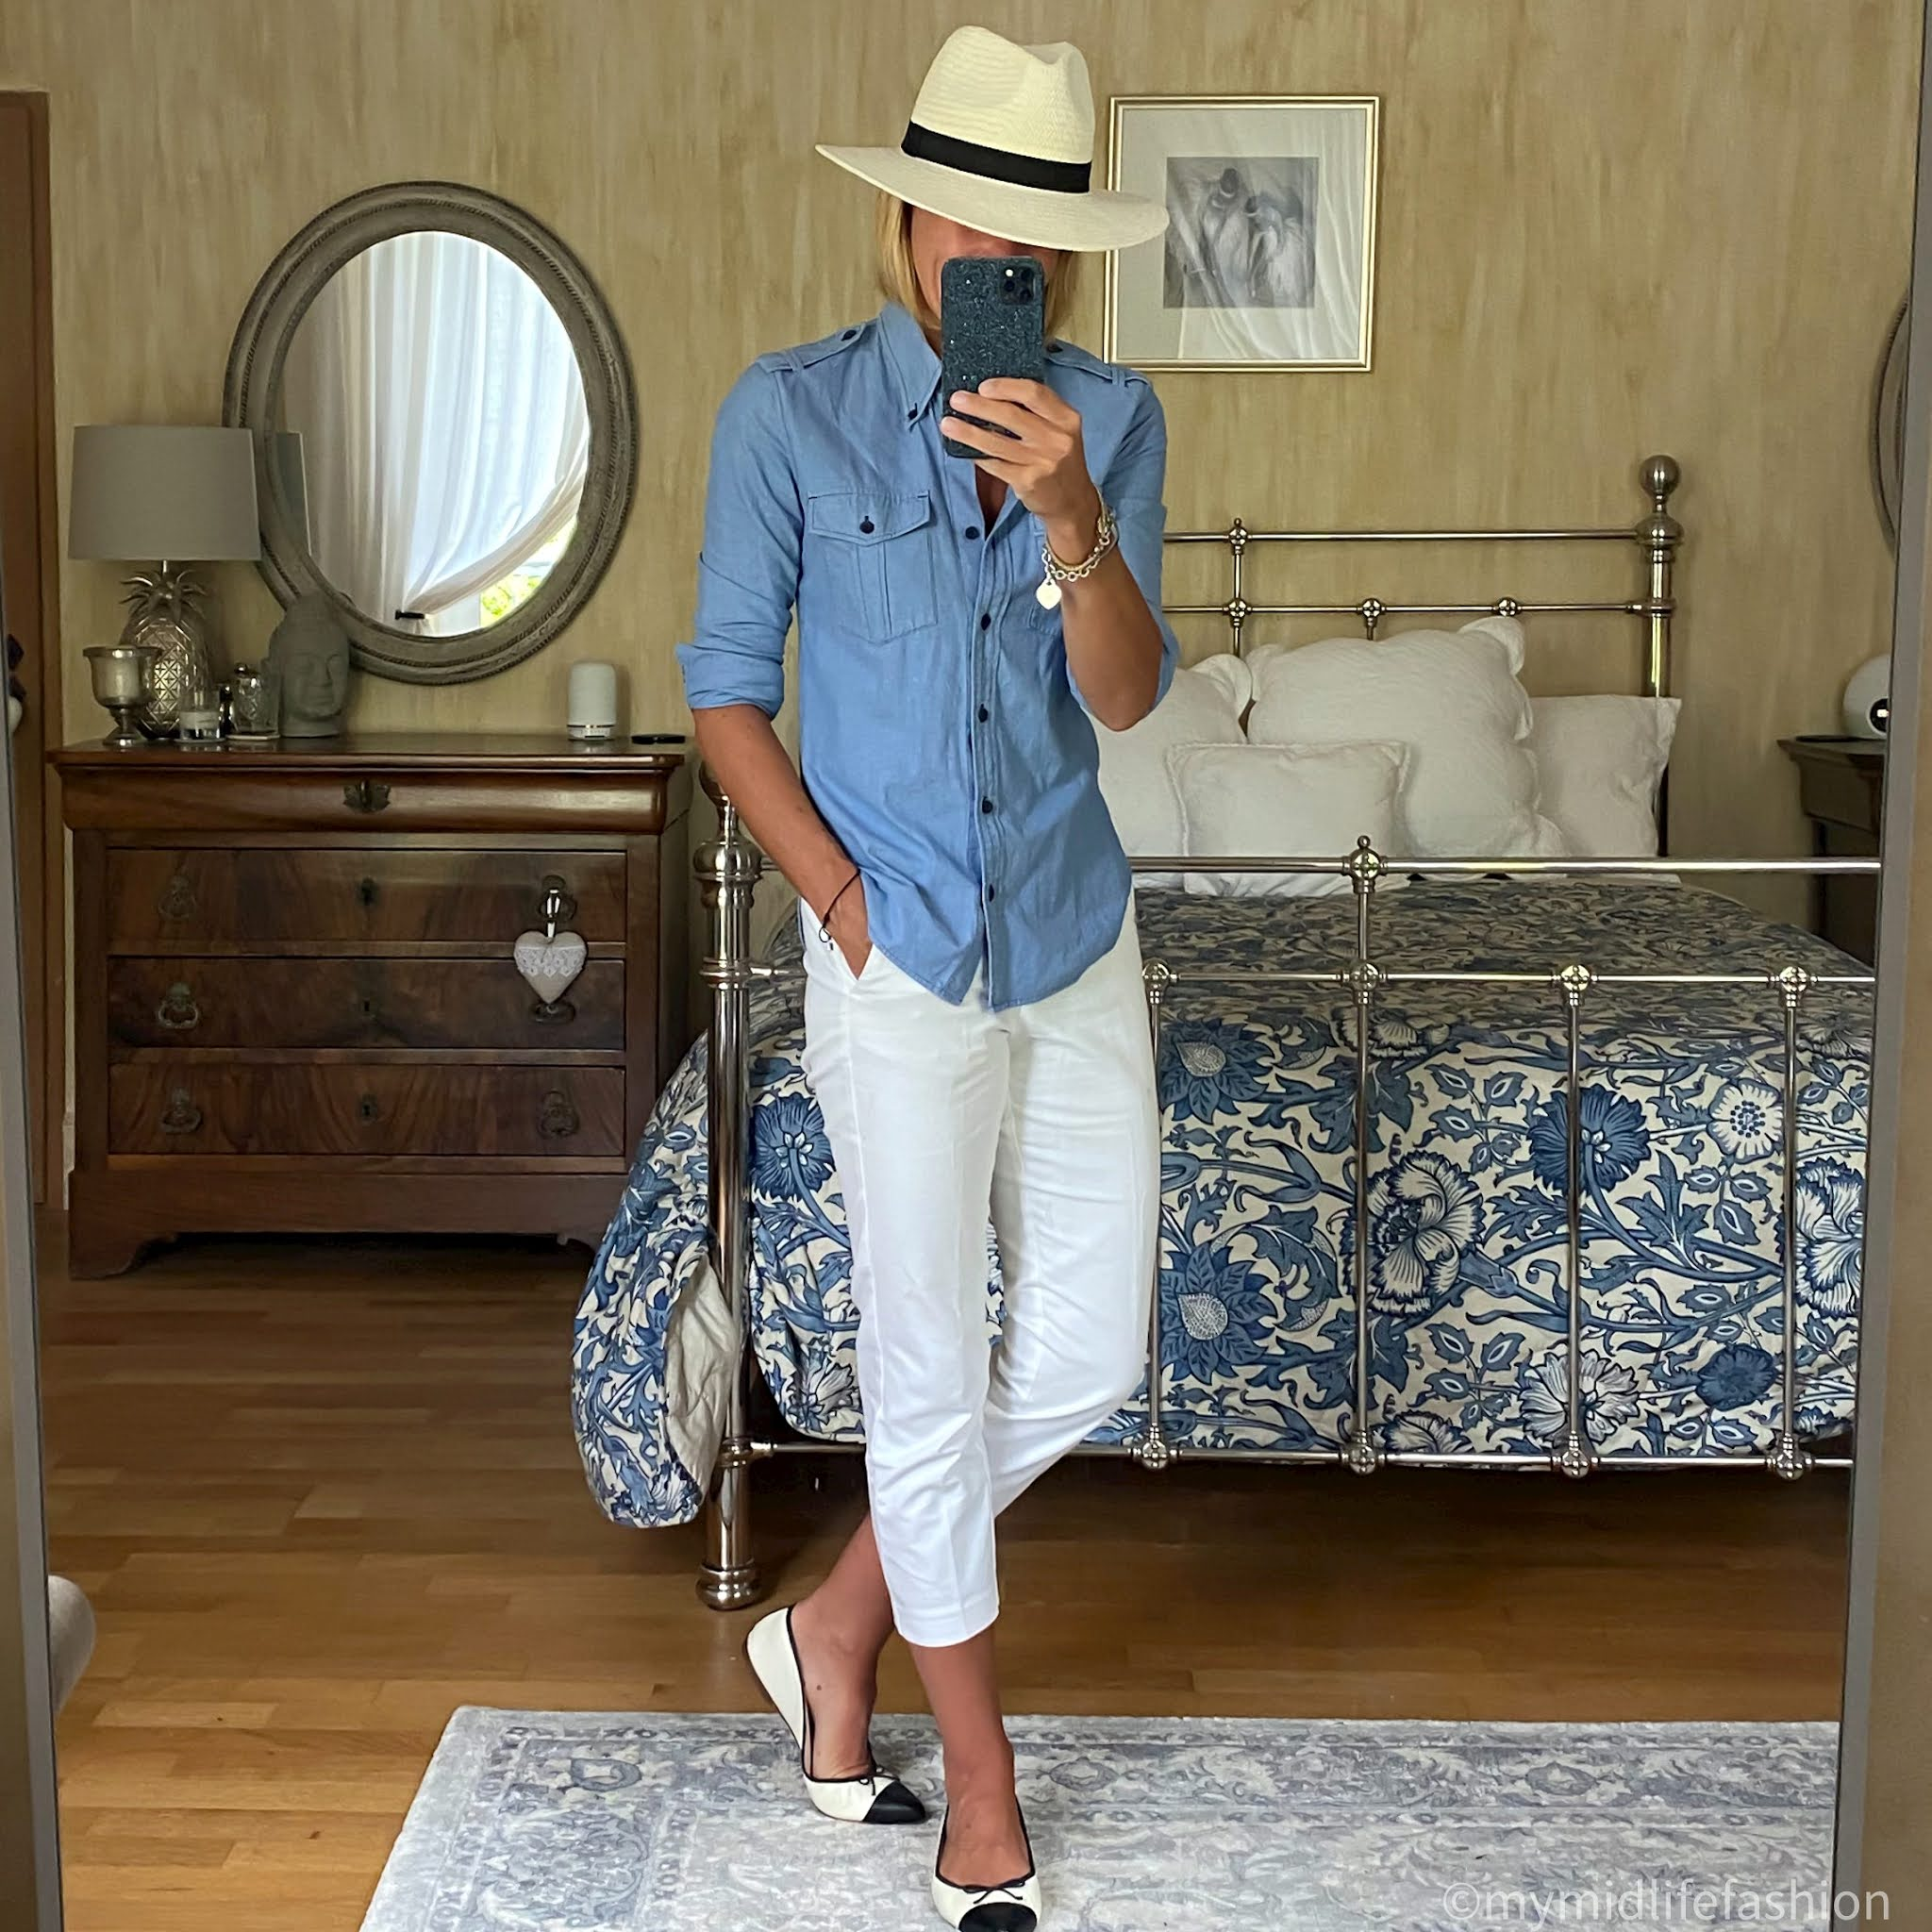 mymidlifefashion, zara panama hat, Isabel Marant Etoile military shirt, marks and Spencer cigarette pants, j crew pointed two tone ballet pumps